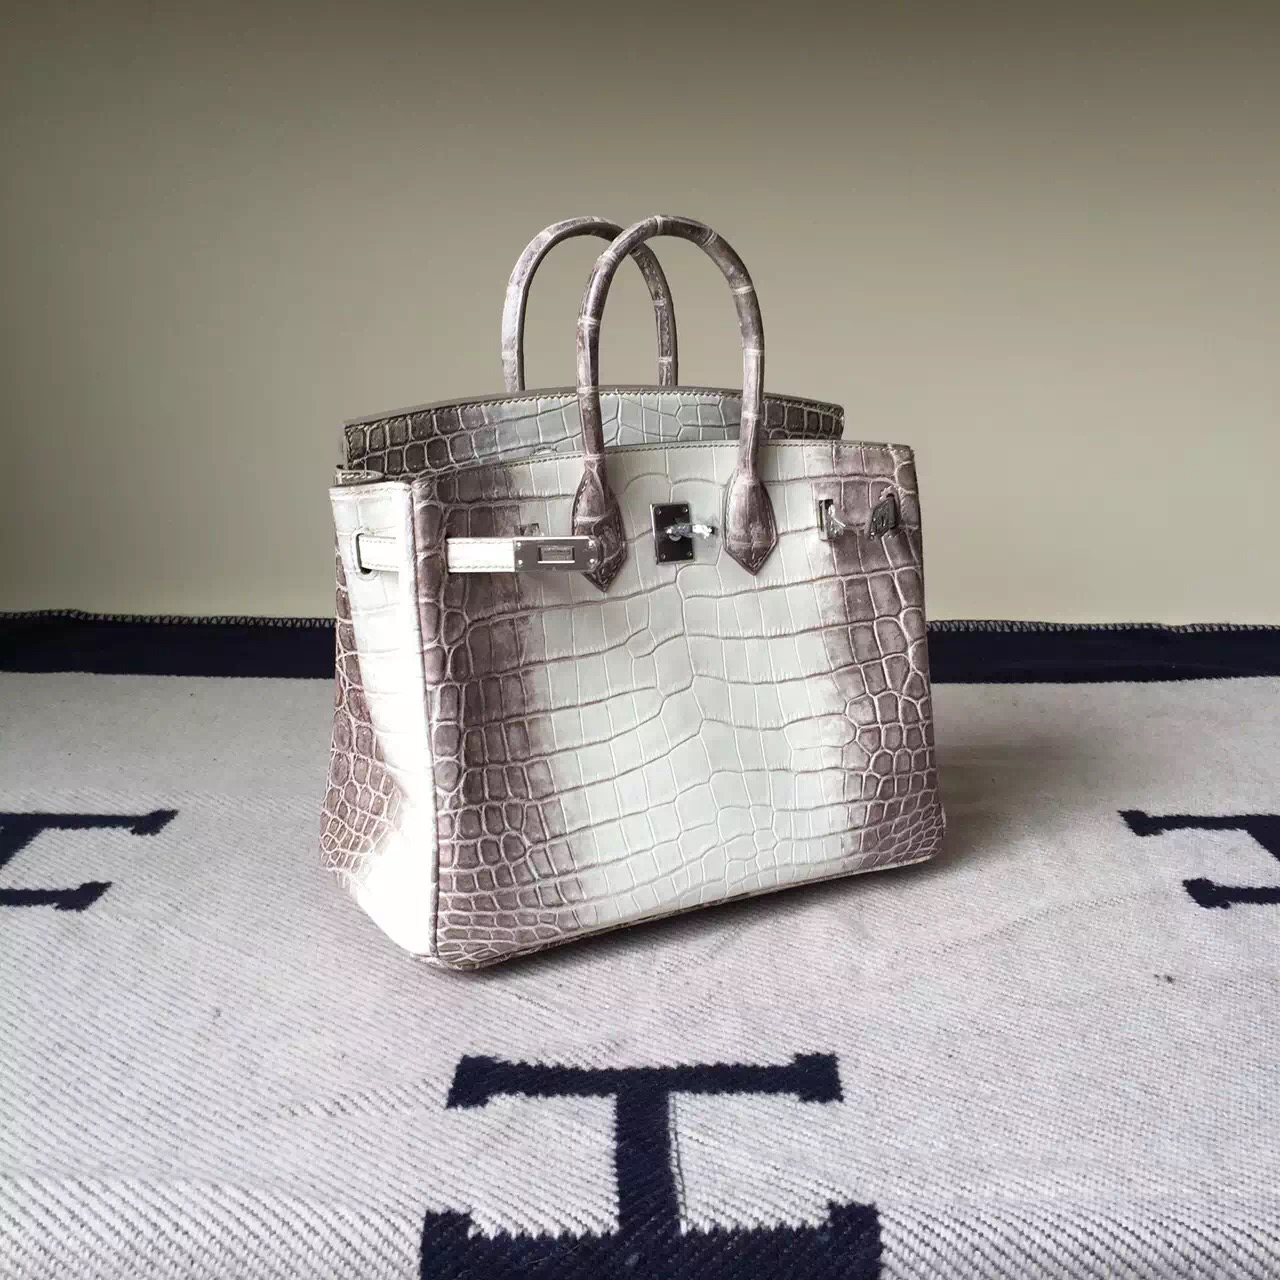 Cheap Hermes Himalaya Crocodile Leather Birkin Bag 25cm